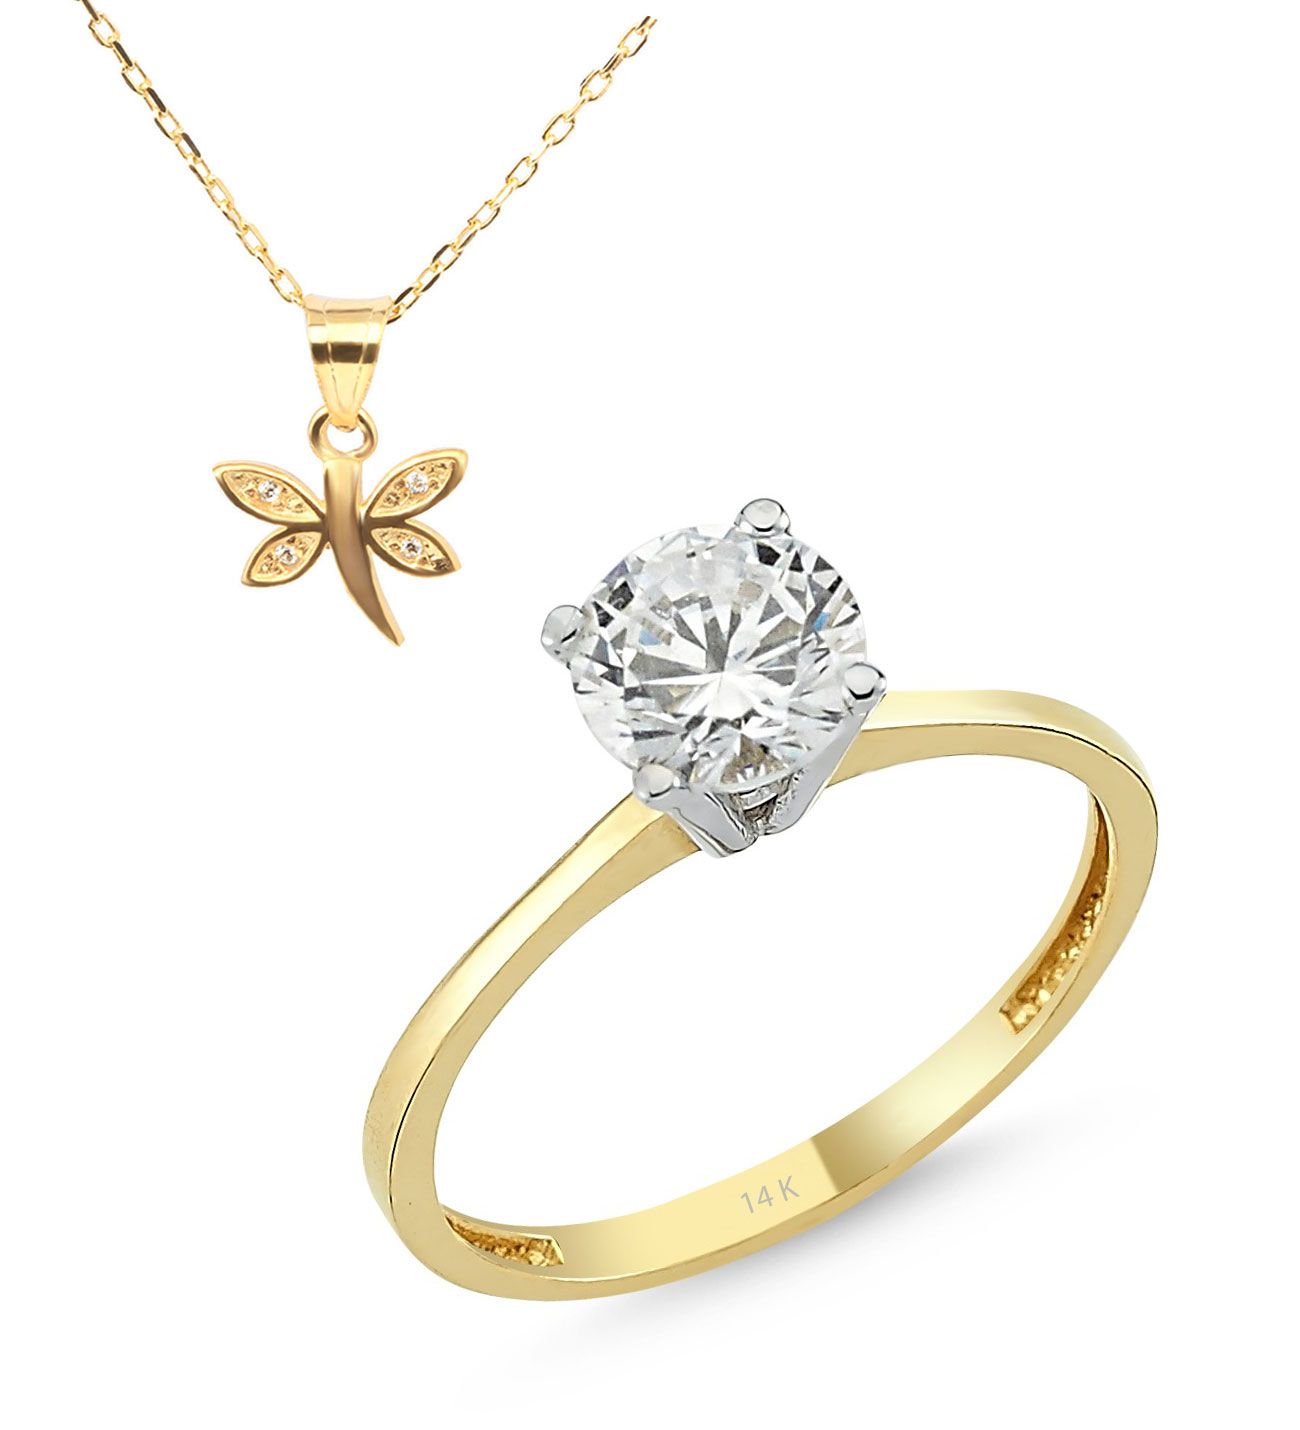 Women's Gemmed Gold Ring- Dragonfly Pendant Necklace Gift